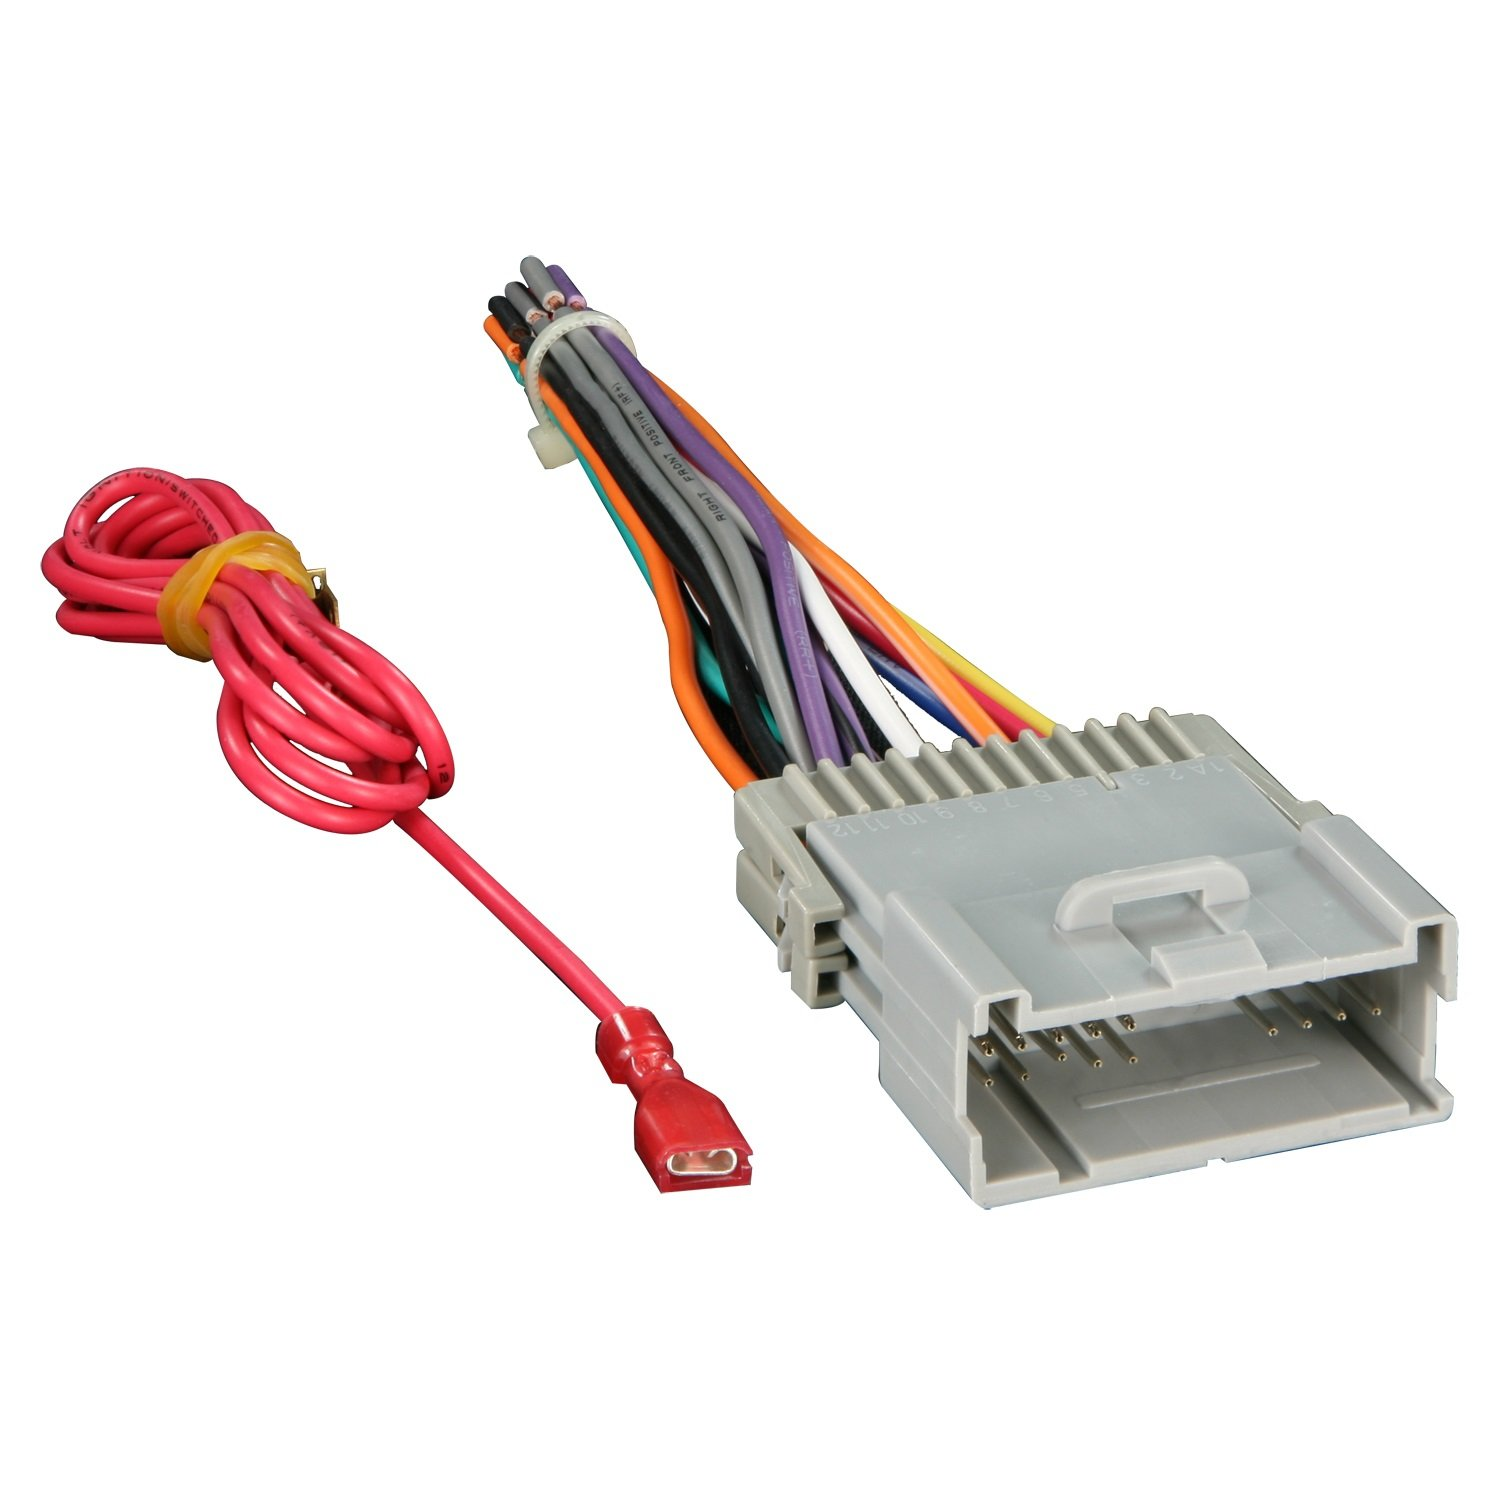 61eewxp9orL._SL1500_ amazon com metra 70 2003 radio wiring harness for gm 98 08 wiring harness kits for car stereo at mr168.co